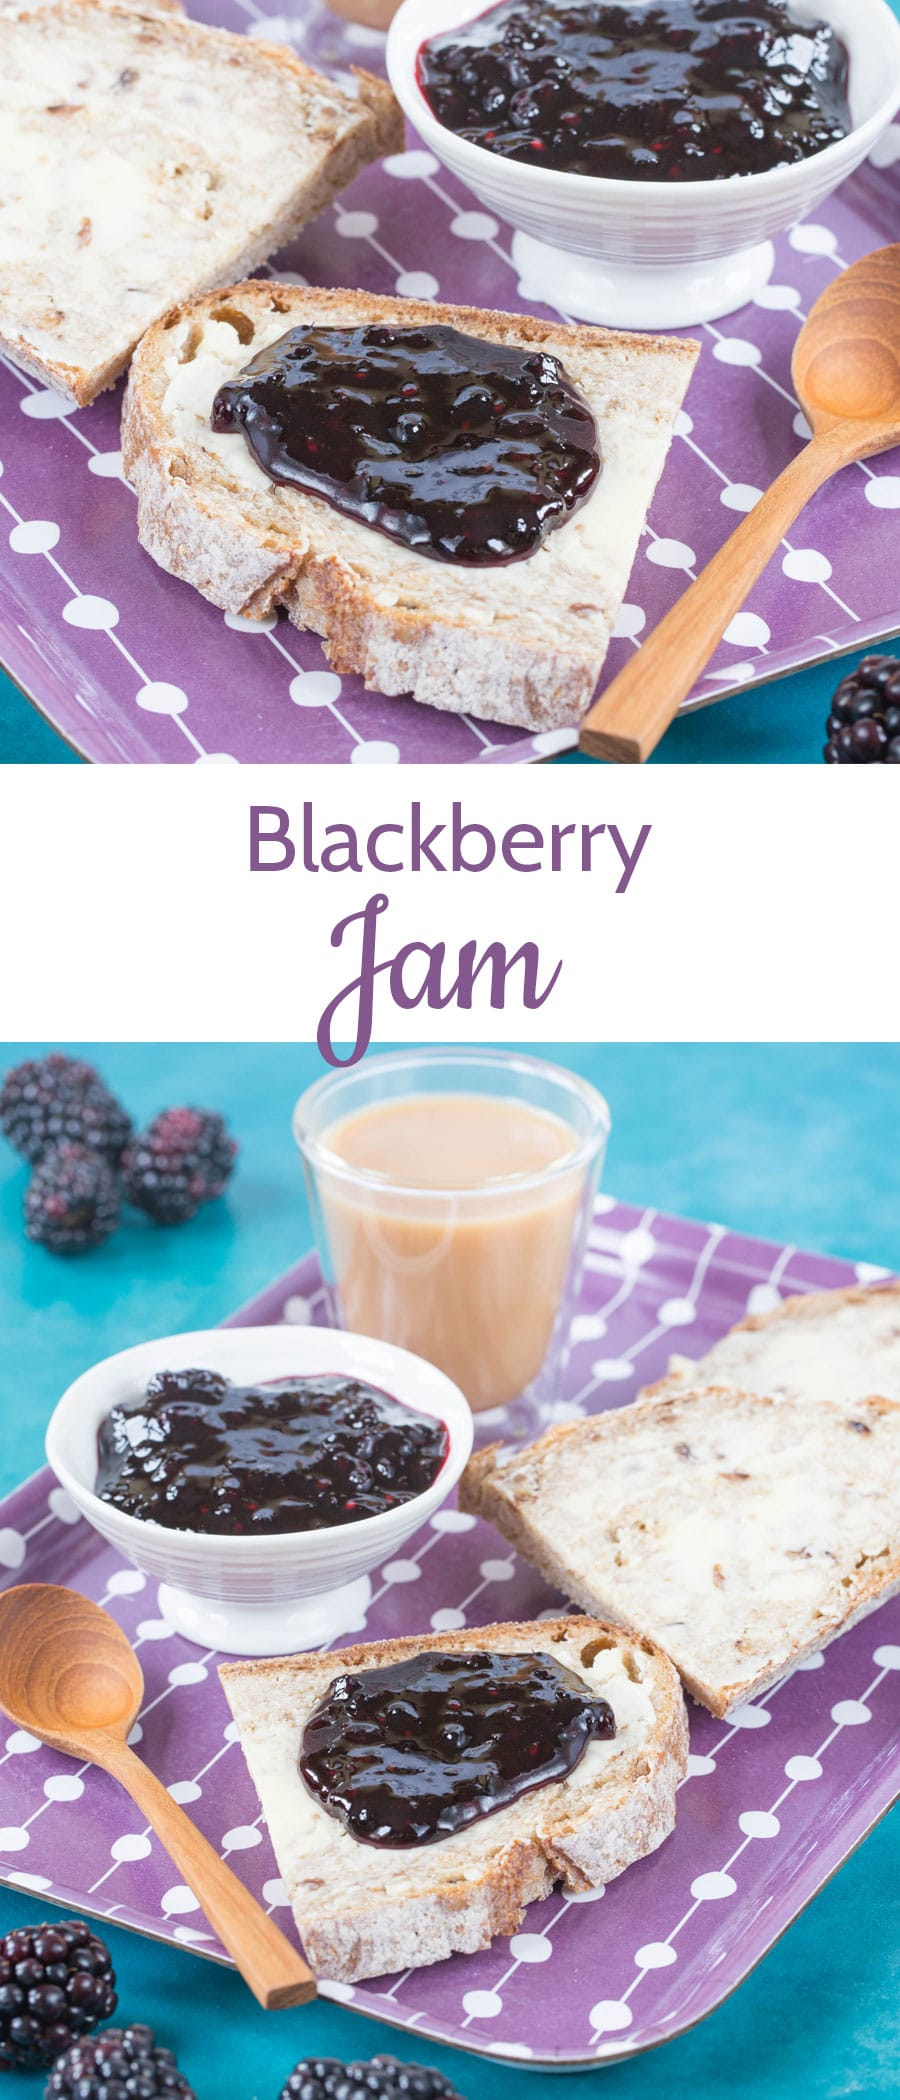 Easy & delicious small batch blackberry jam takes no time to make and gives top quality results with a pure, fruit flavour. Small batch jam takes no time either! Makes just two jars. Three ingredients and no added pectin.